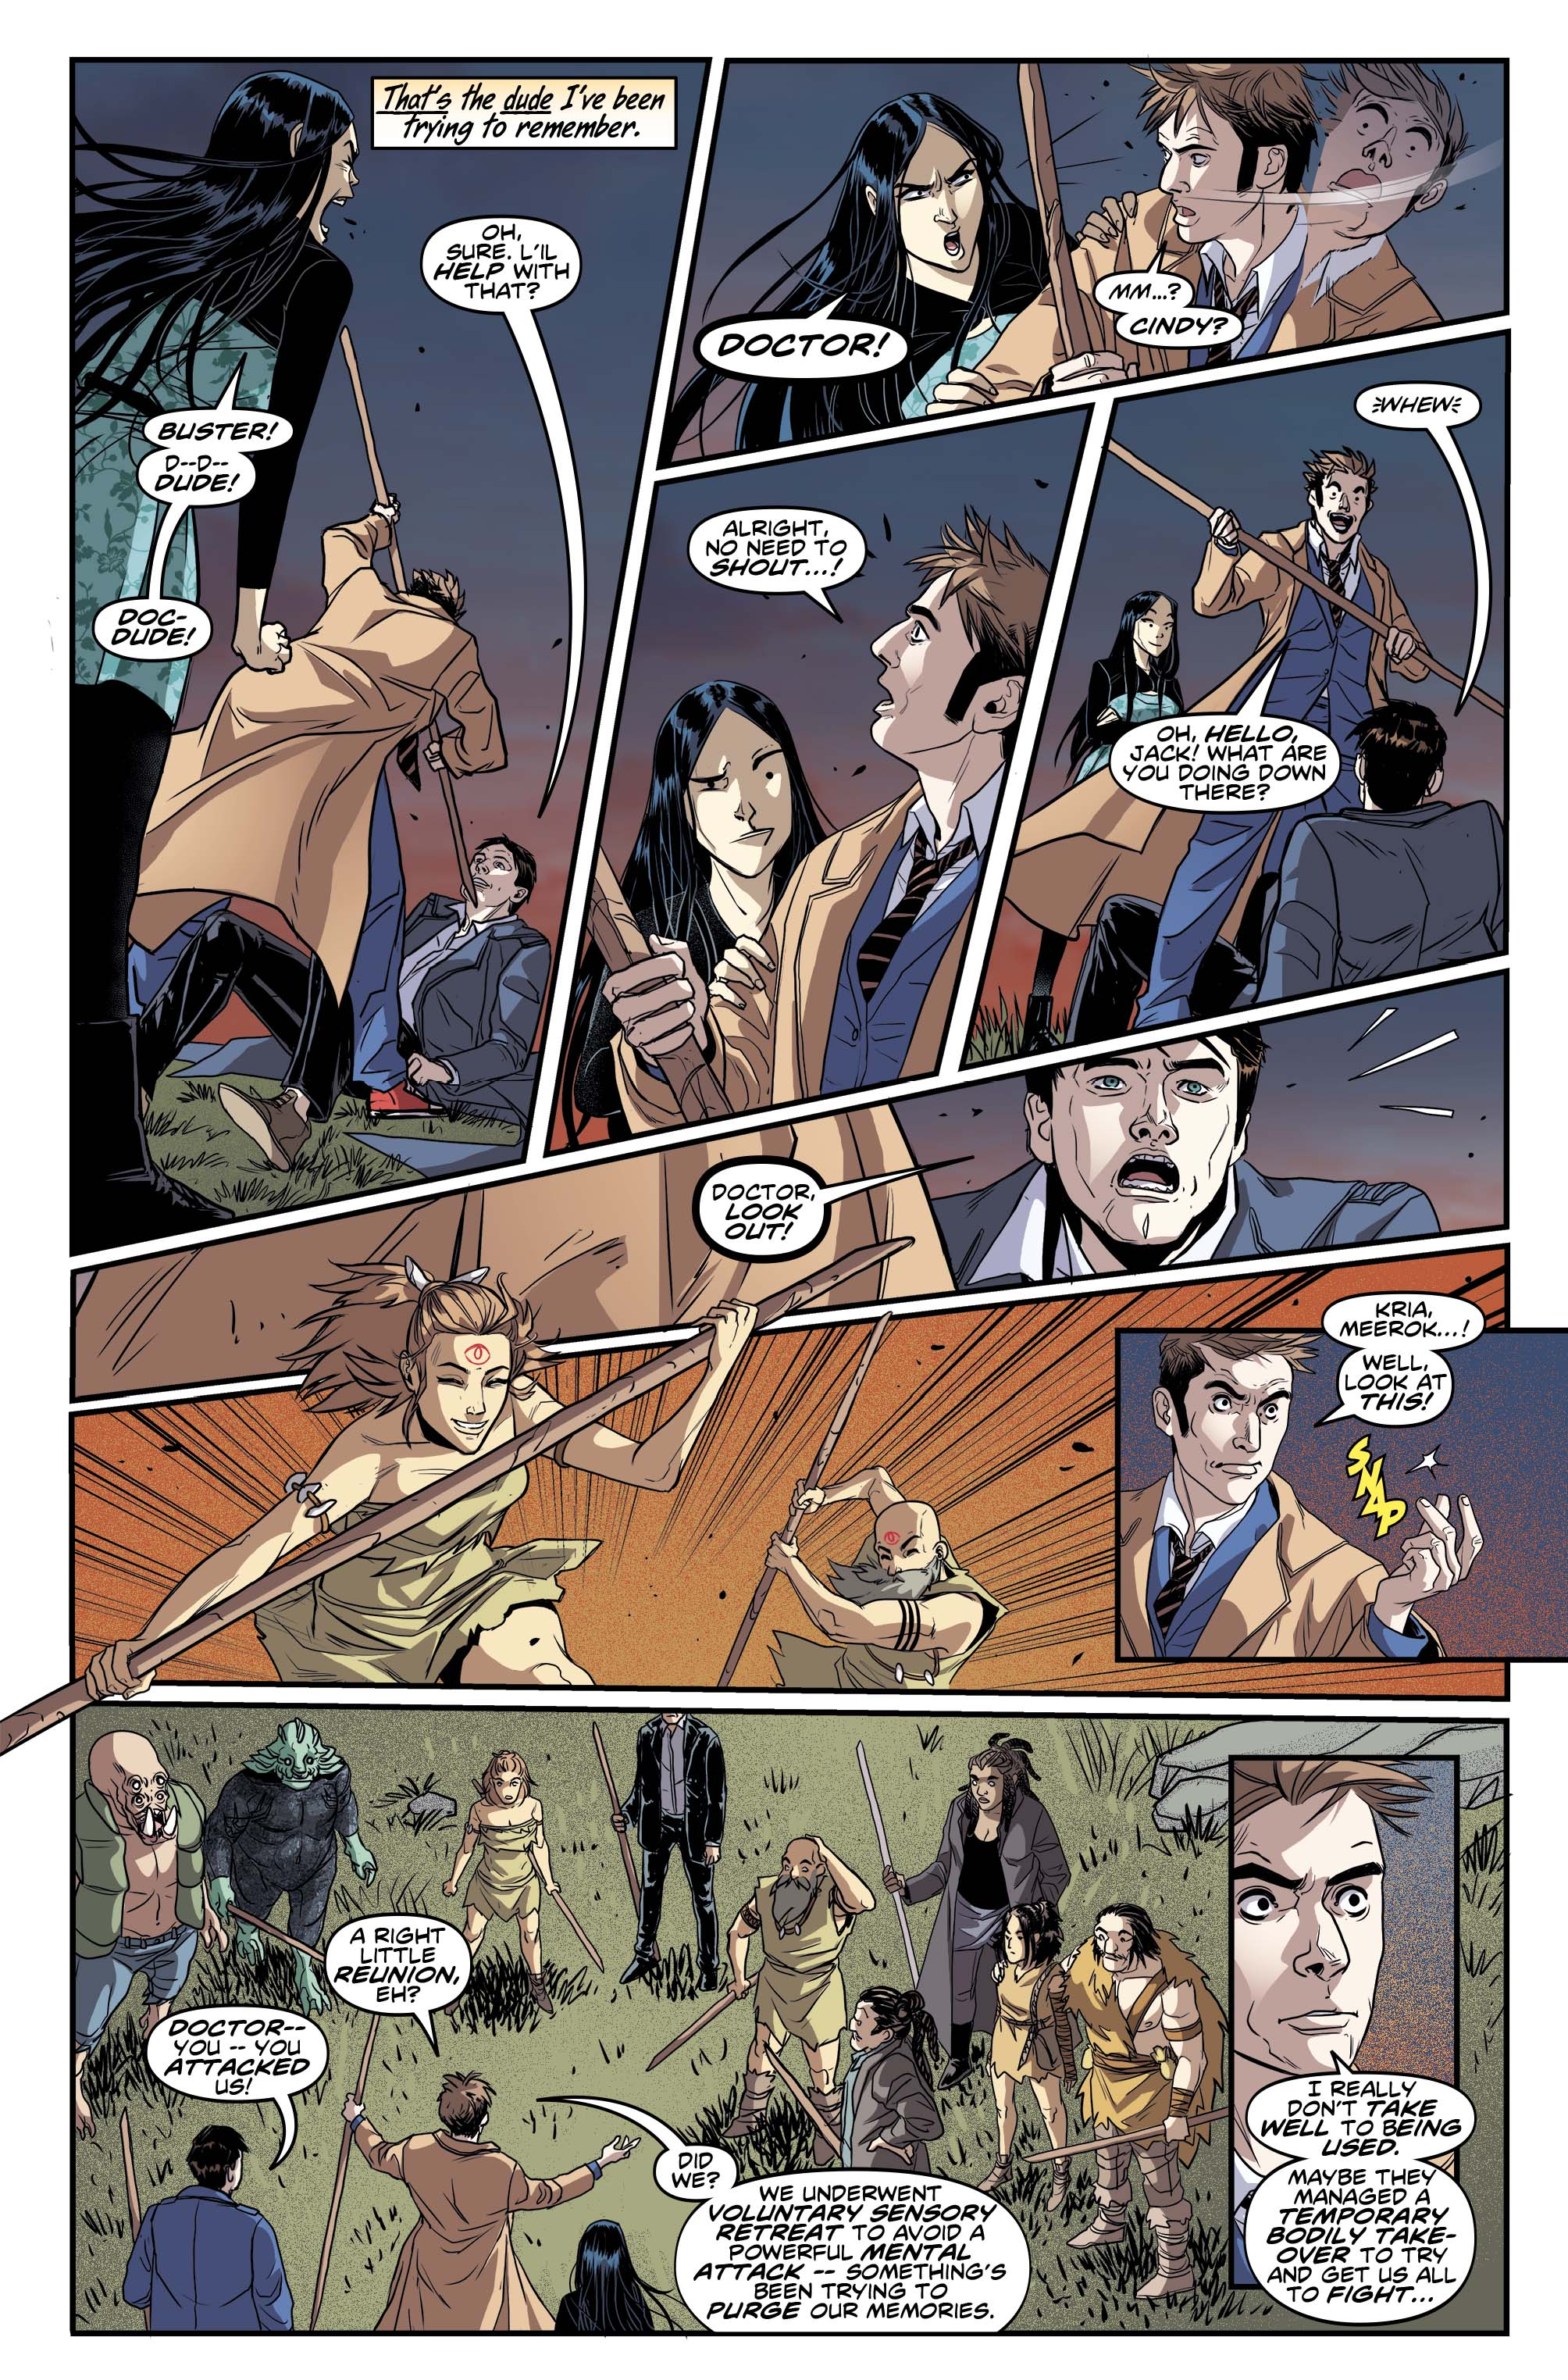 DOCTOR WHO: THE TENTH DOCTOR #2.6 (Credit: Titan)